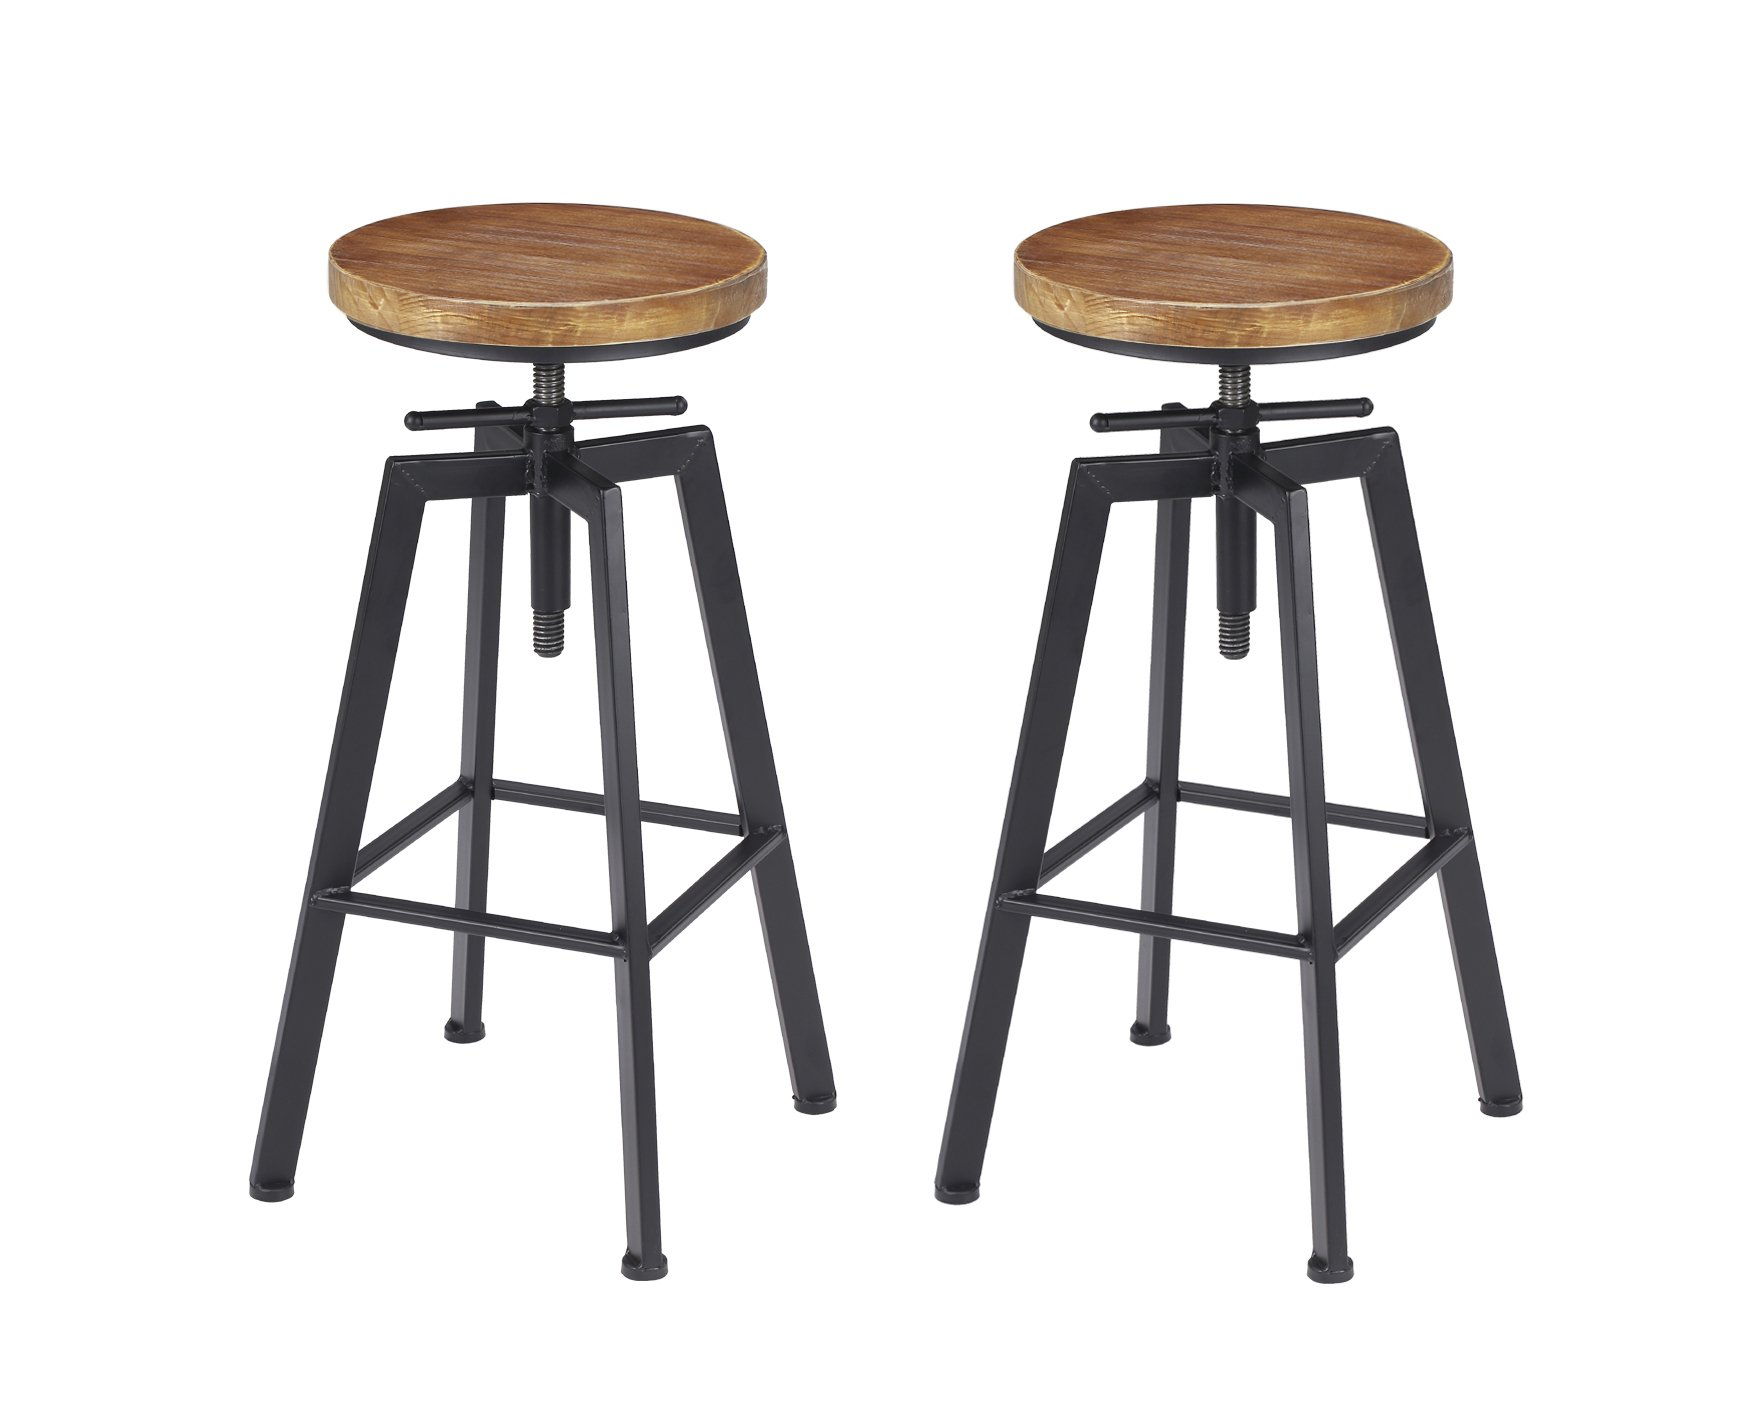 VILAVITA Set of 2 24.8'' to 28.8'' Adjustable Round Pine Wood Barstools, Retro Finish Wooden Seat with Wrought Iron Frame Bar Chairs Swivel Bar Stools